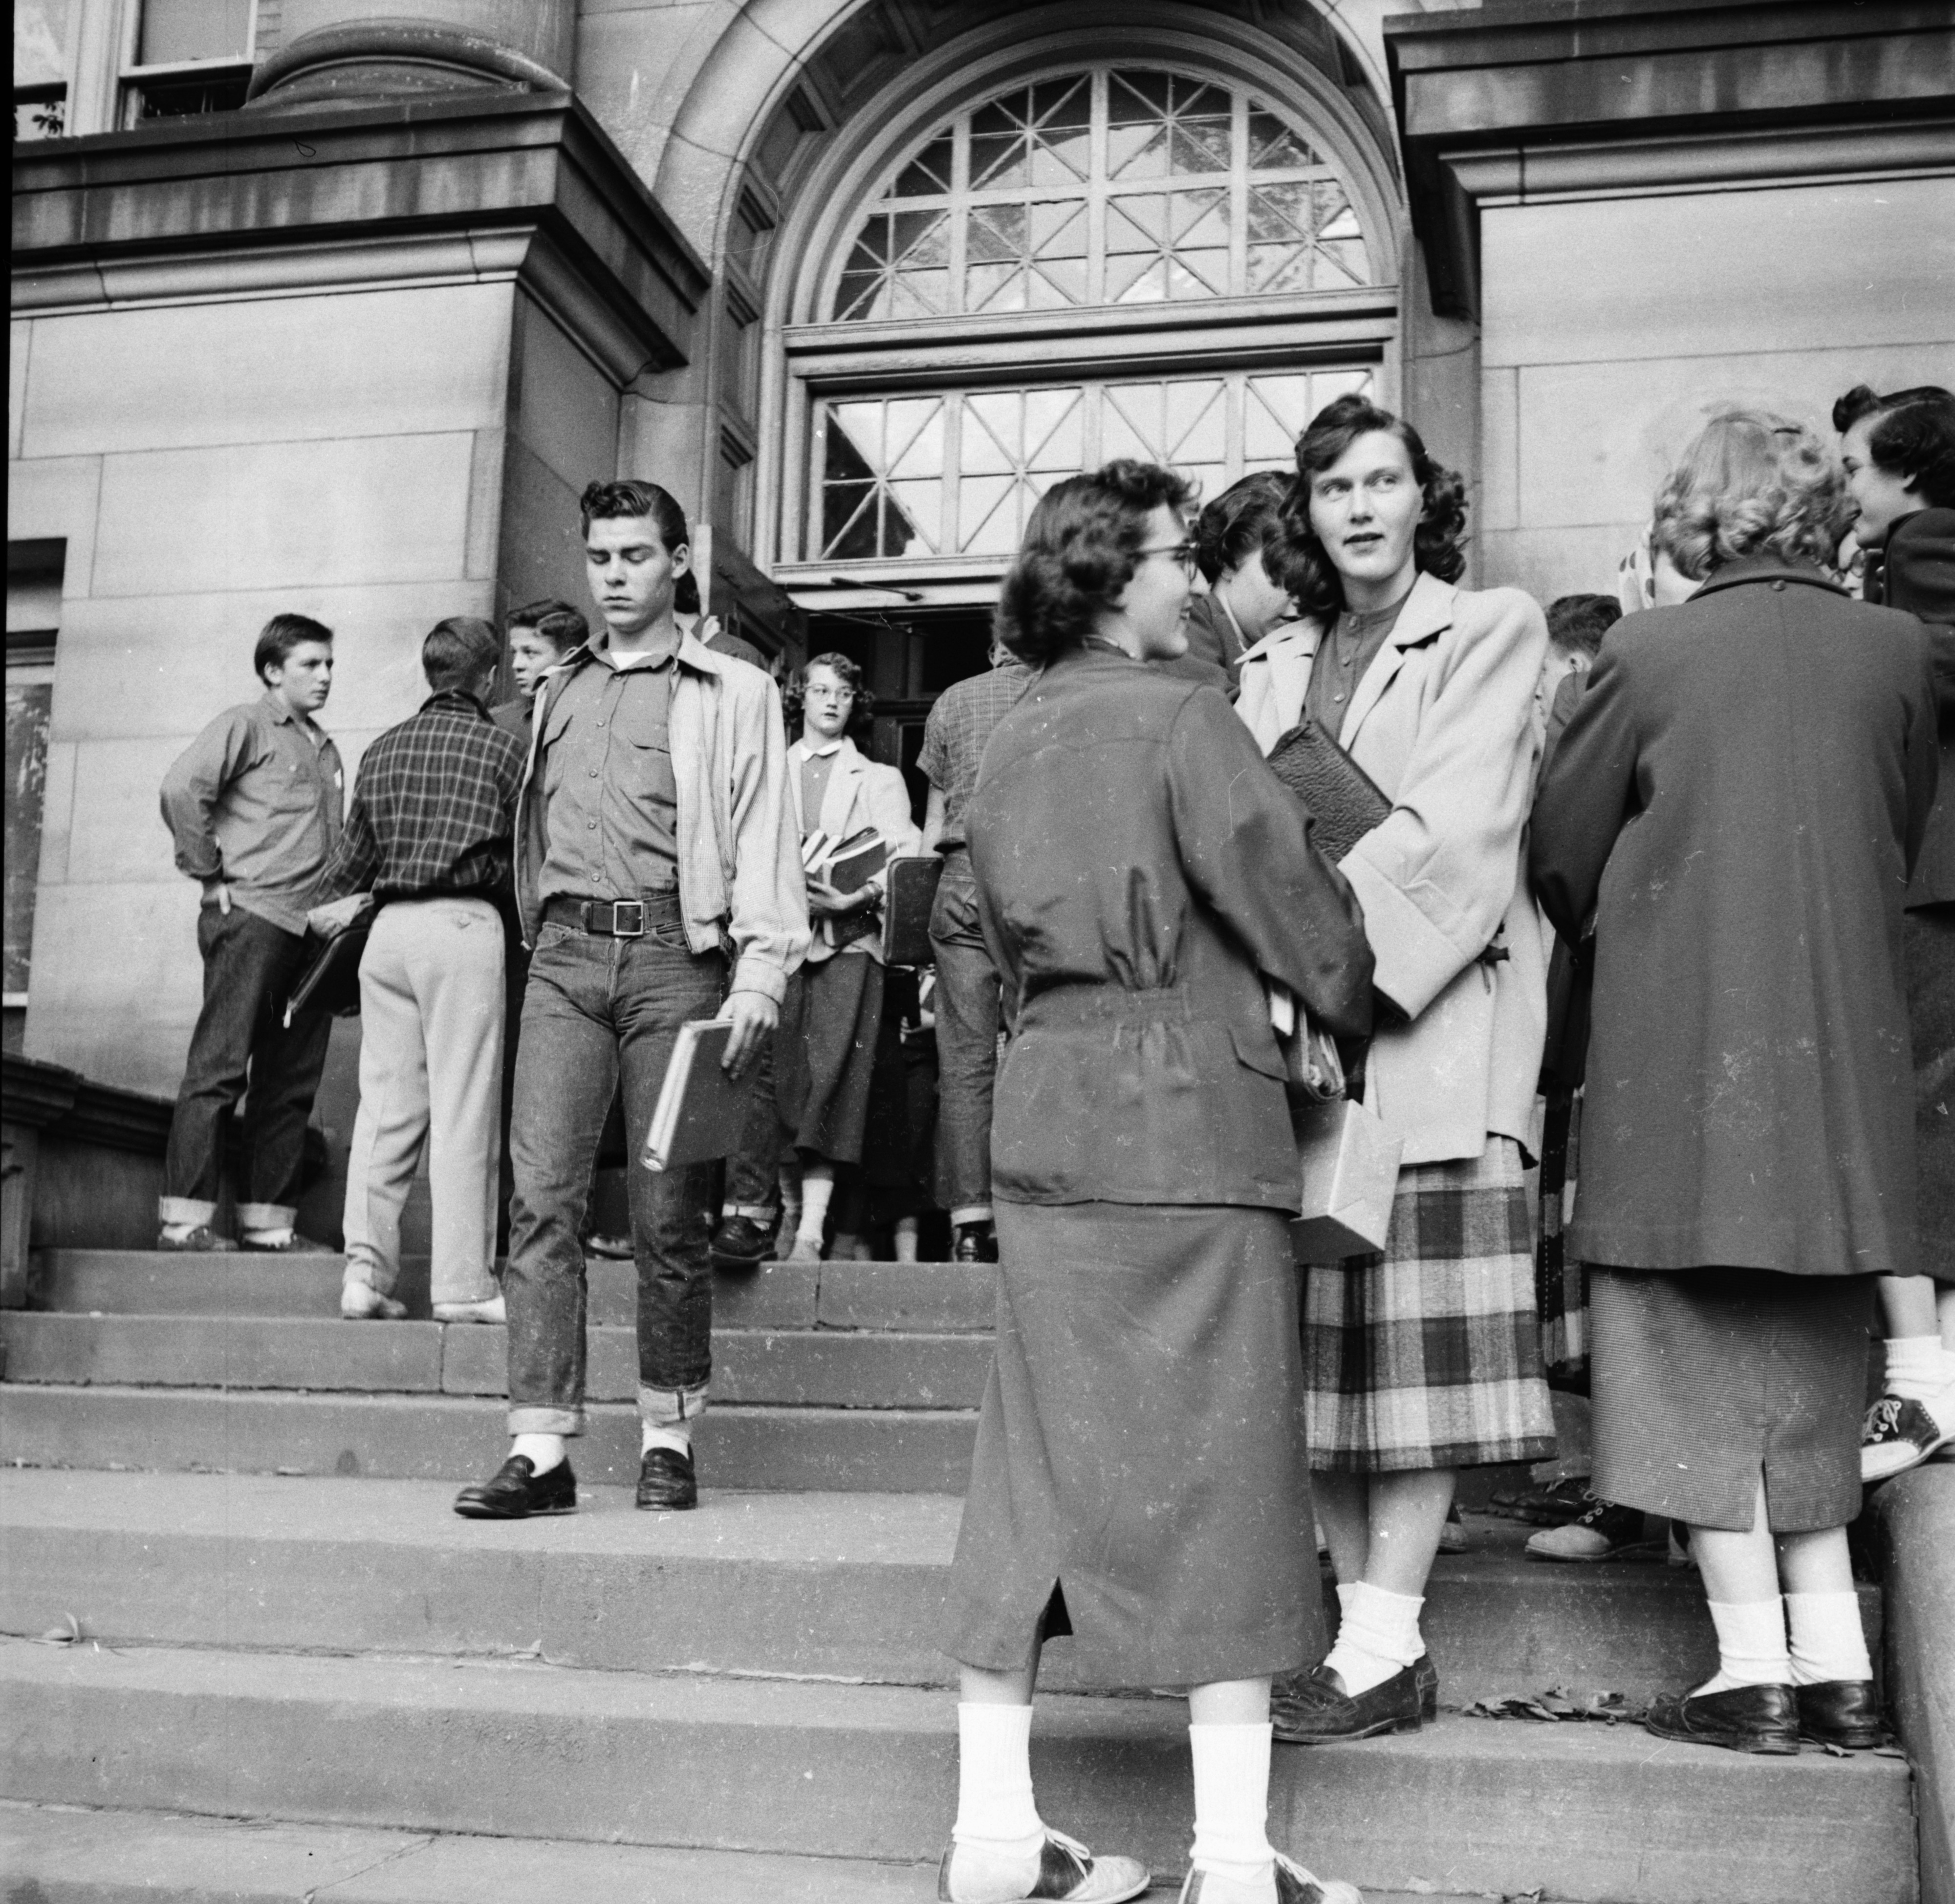 On the Steps of Ann Arbor High School, September 1952 image